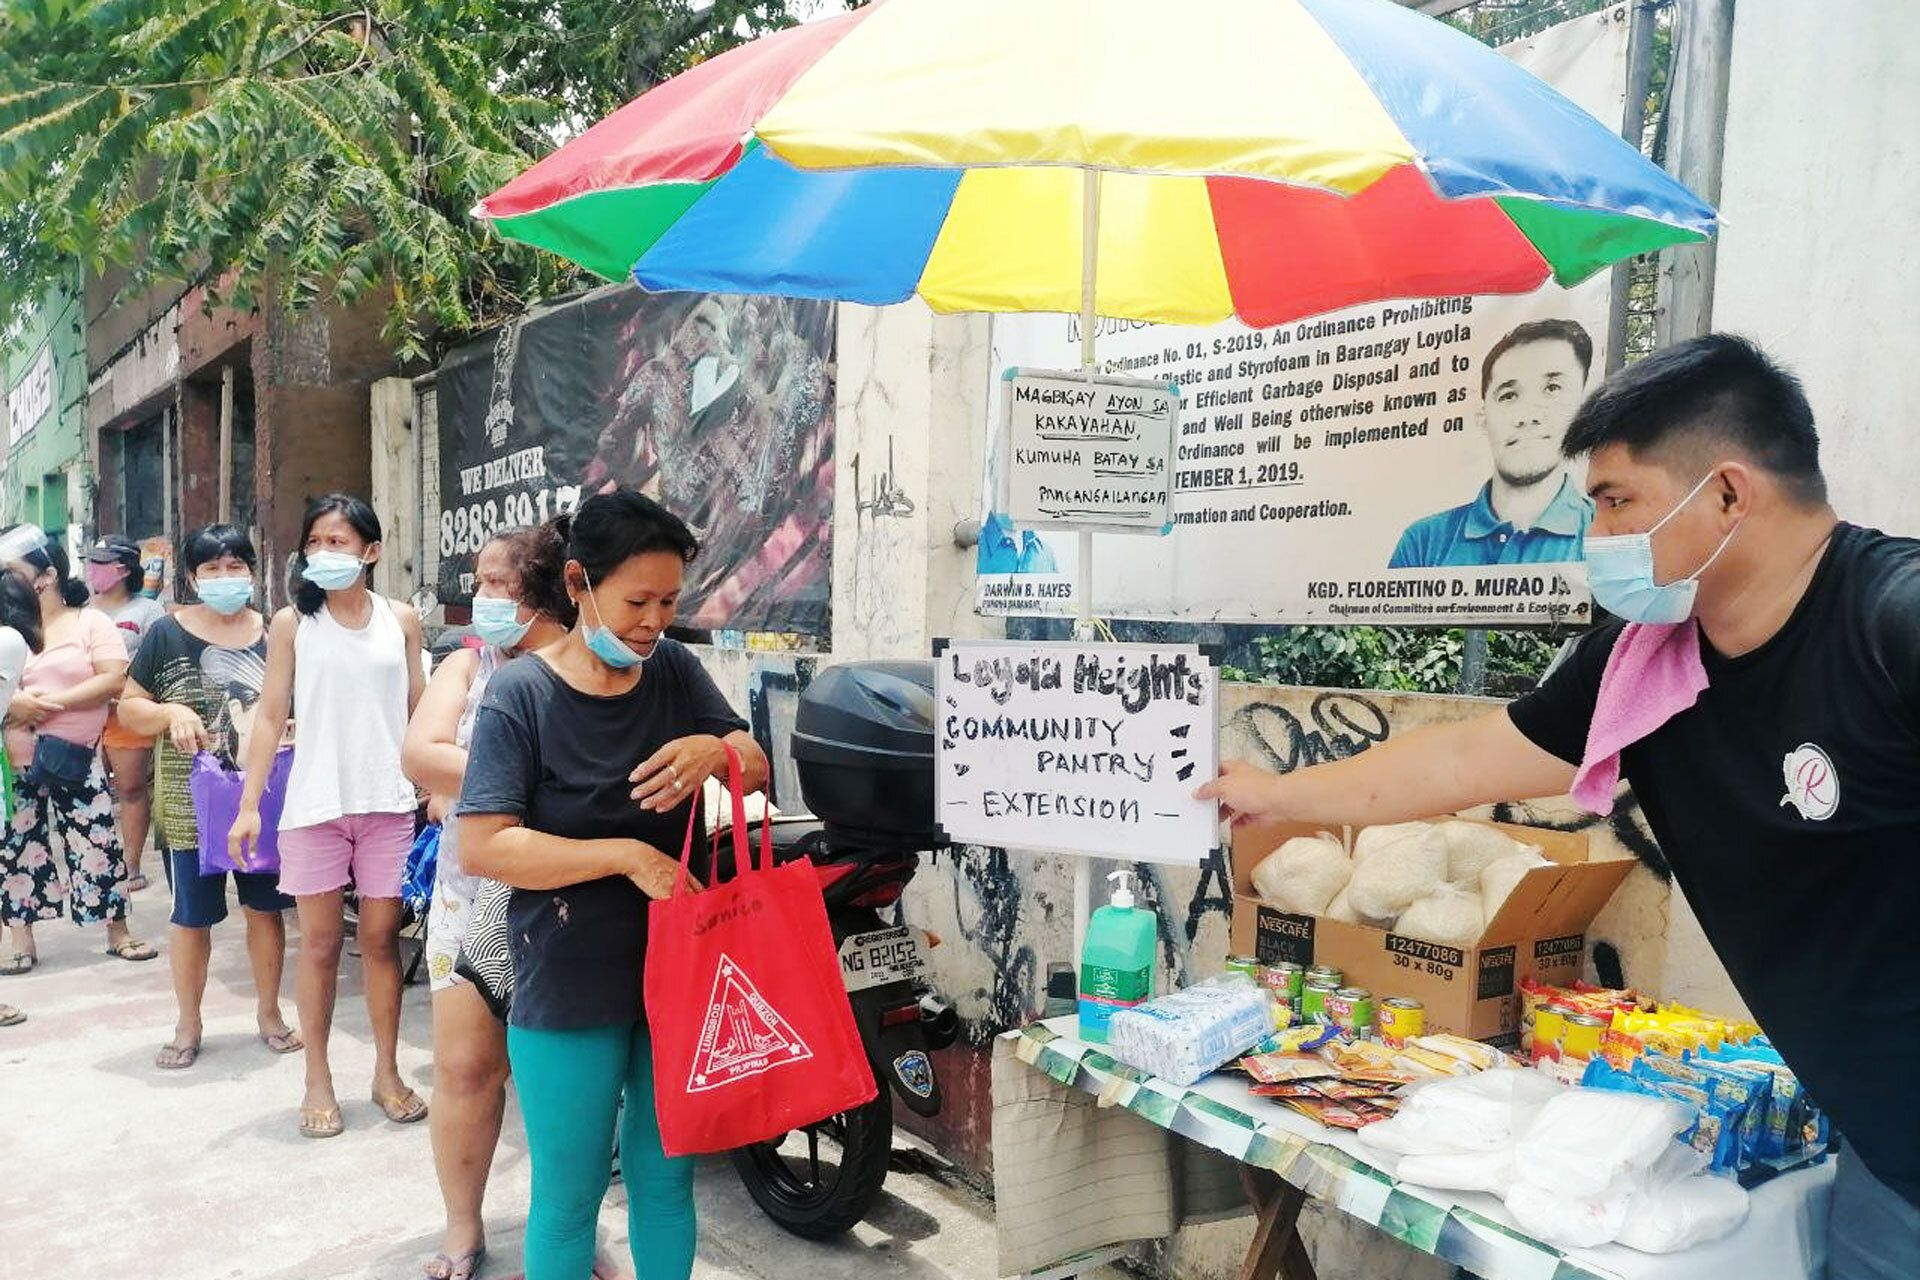 The Loyola Heights community pantry set up by volunteers